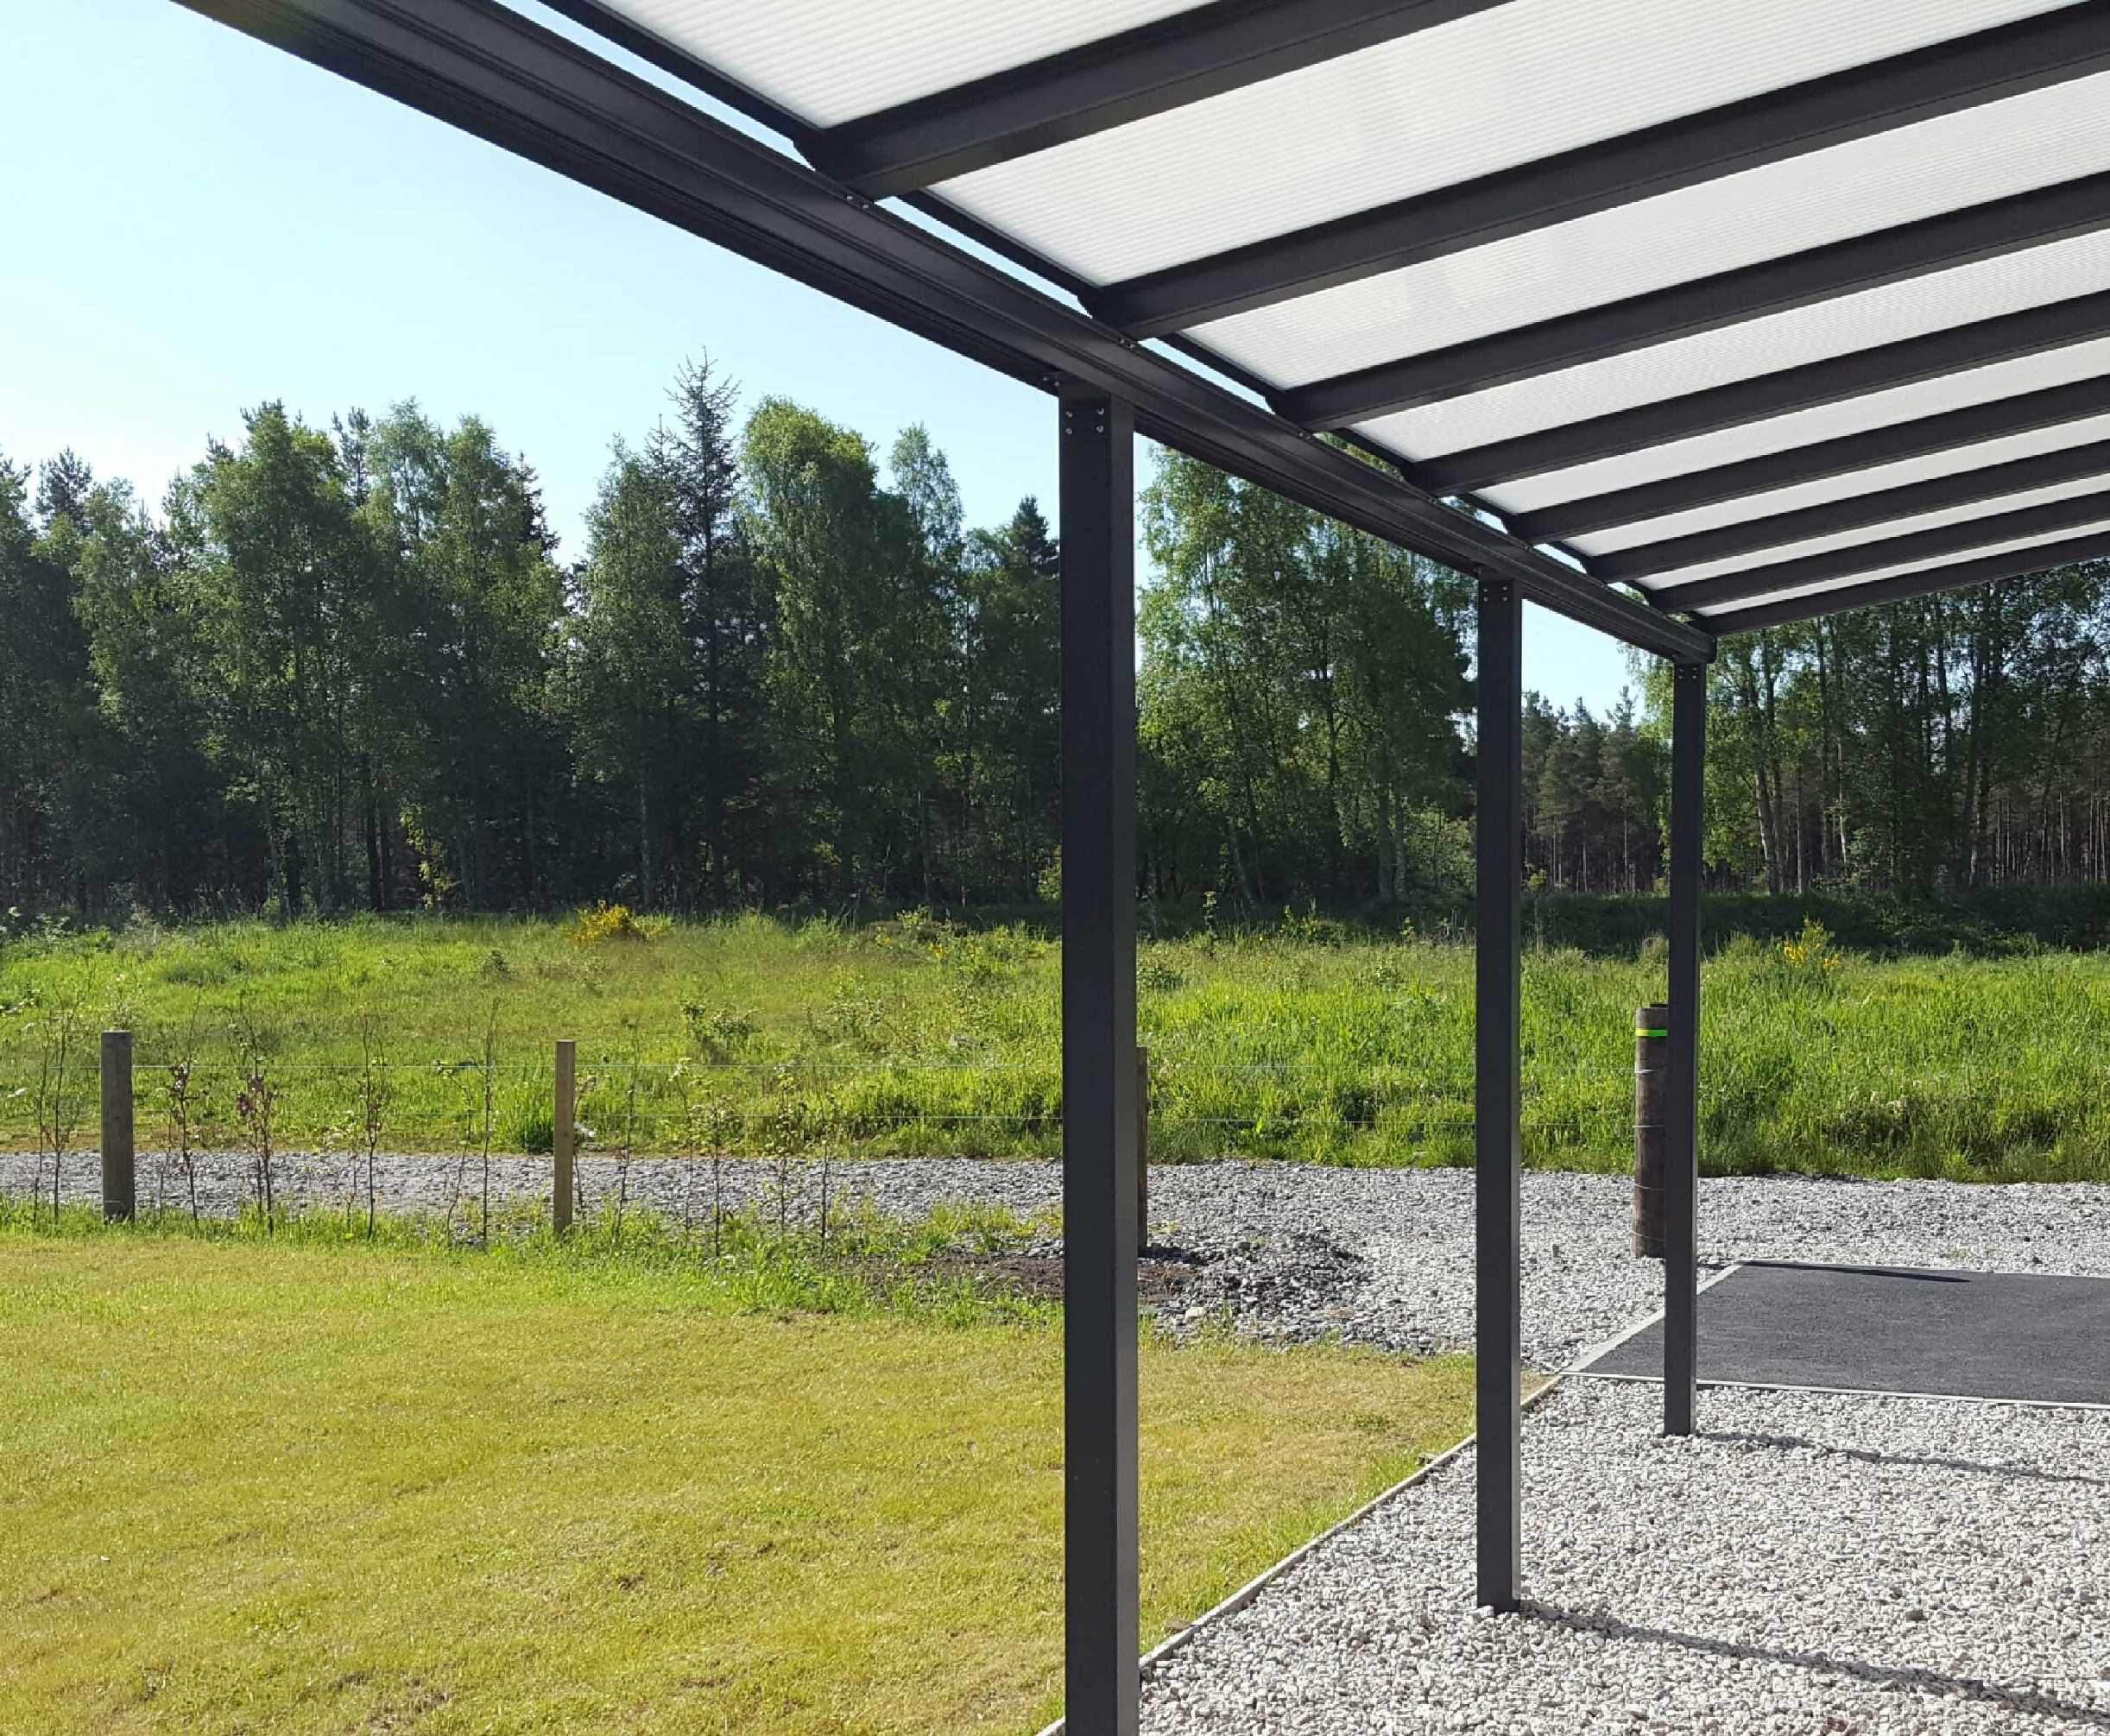 Omega Smart Lean-To Canopy, Anthracite Grey, UNGLAZED for 6mm Glazing - 2.8m (W) x 2.0m (P), (2) Supporting Posts